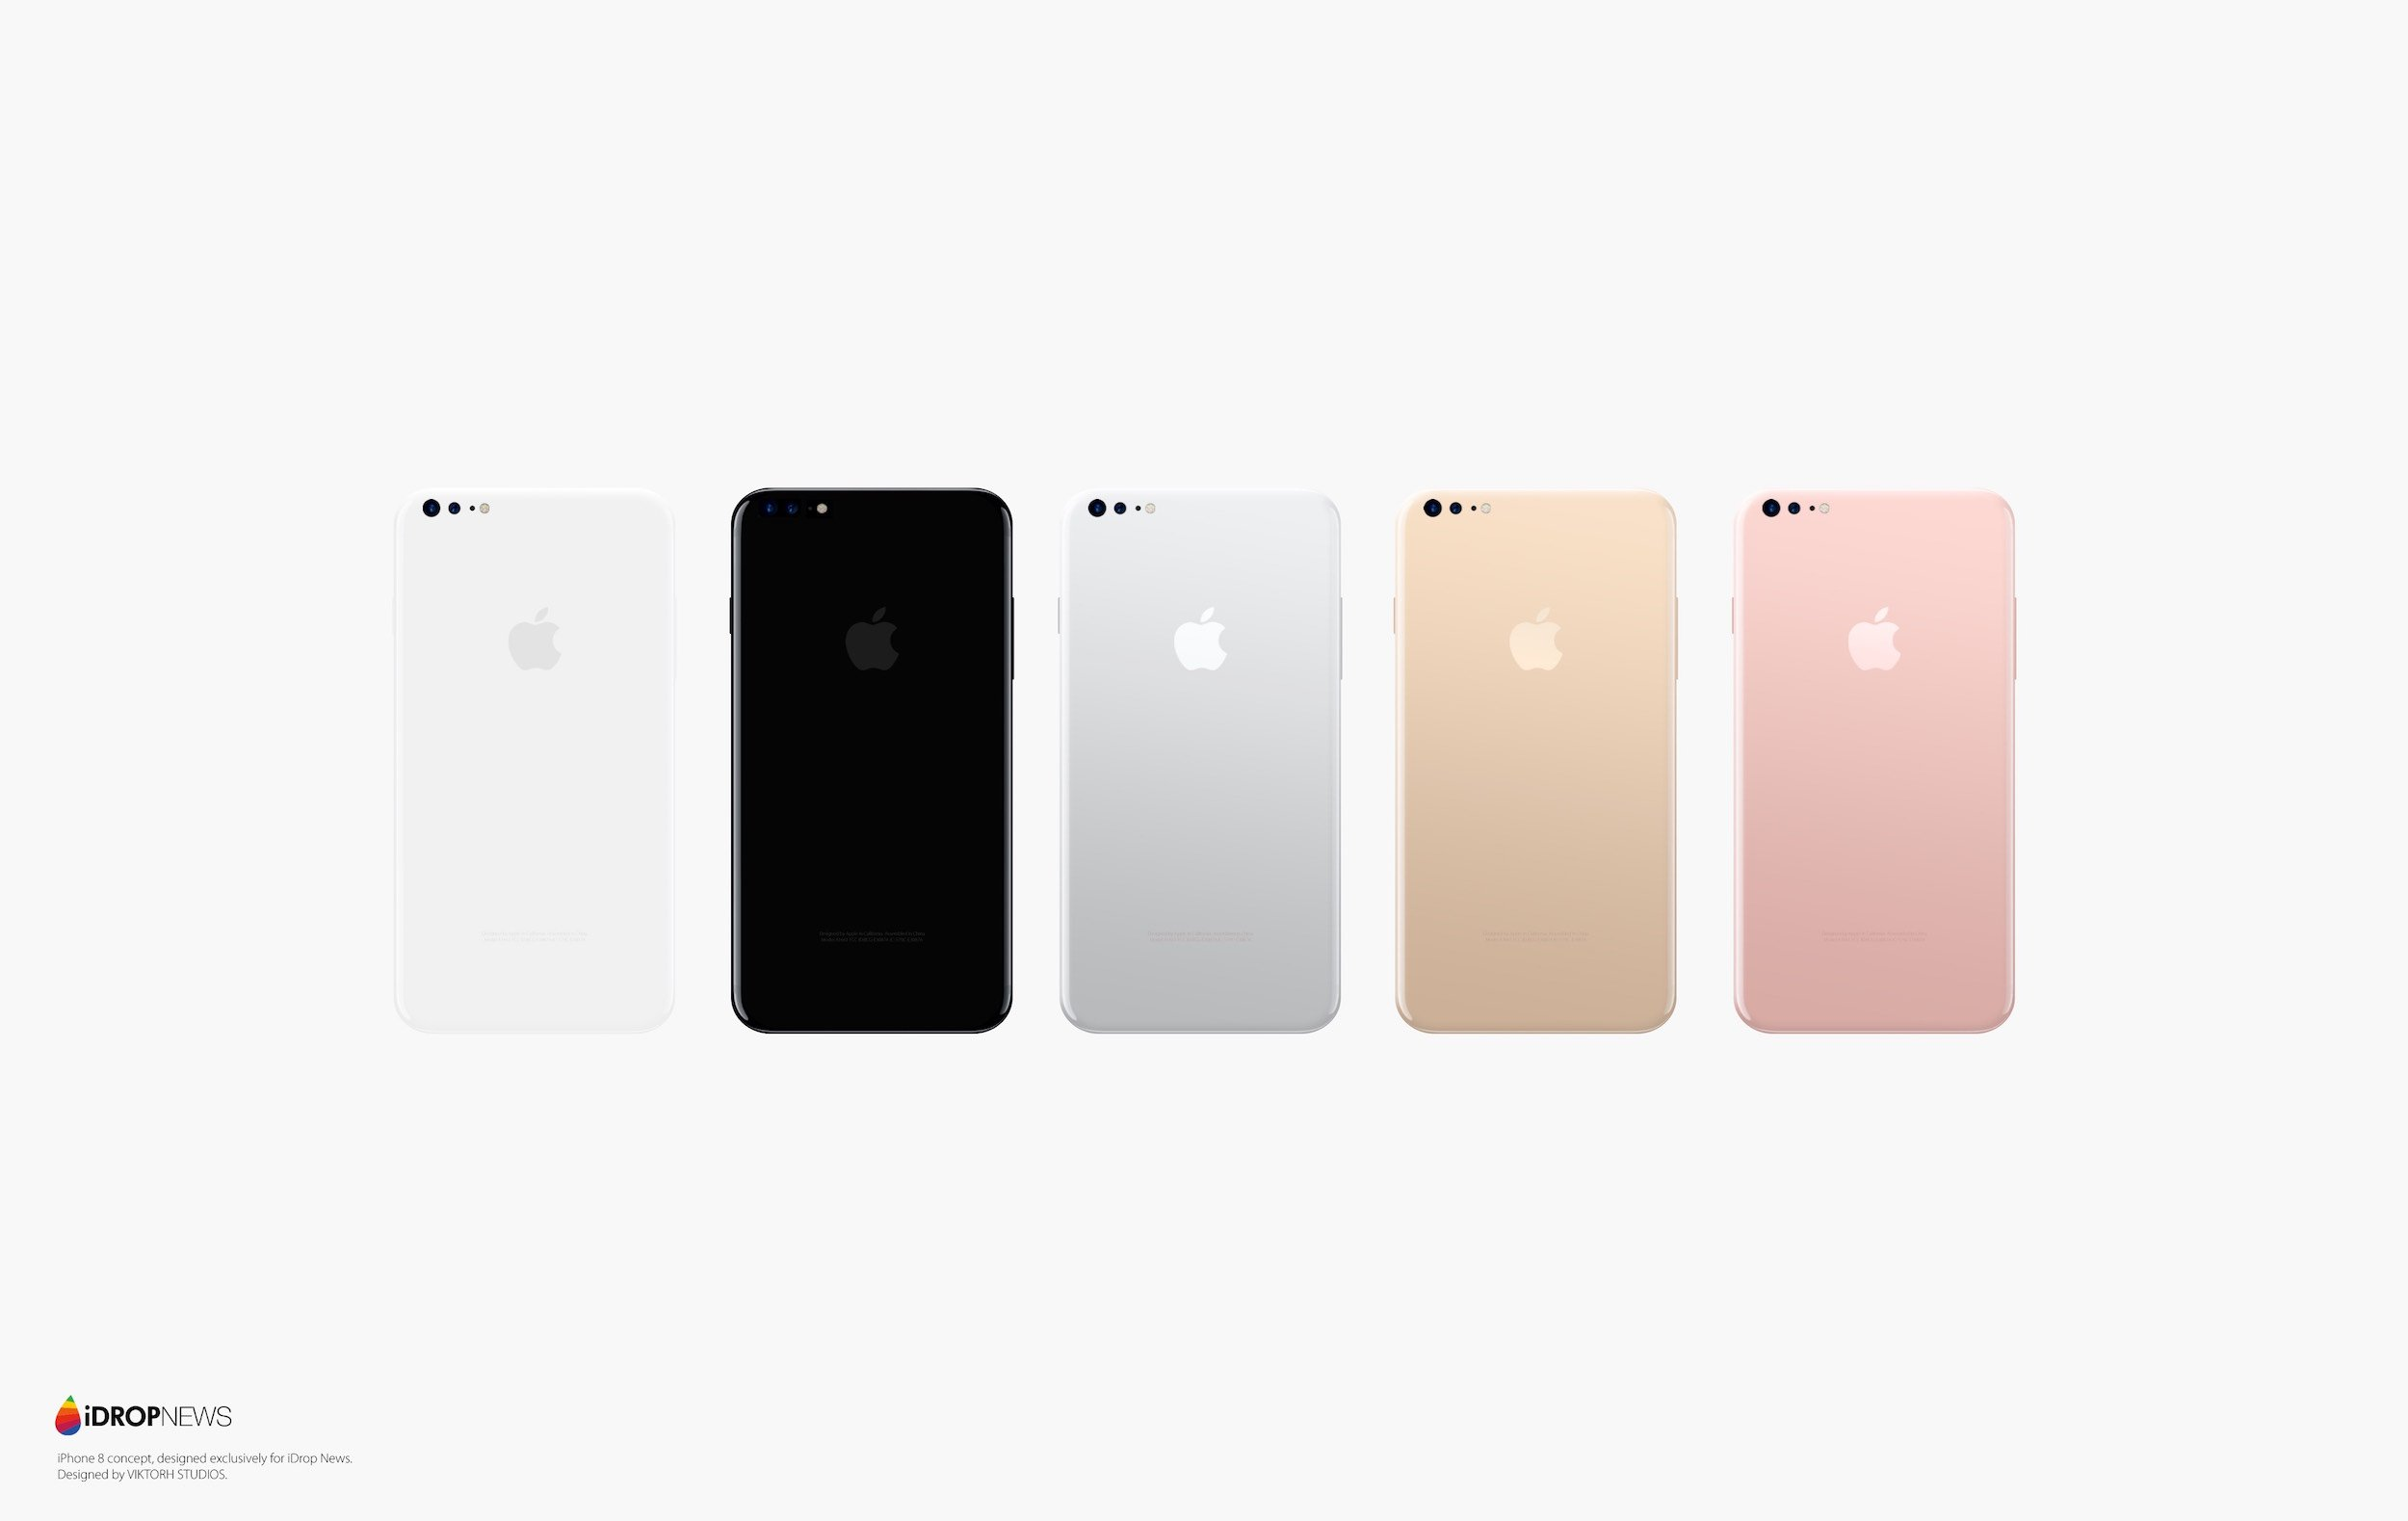 iphone-8-concept-design-no-frame_04